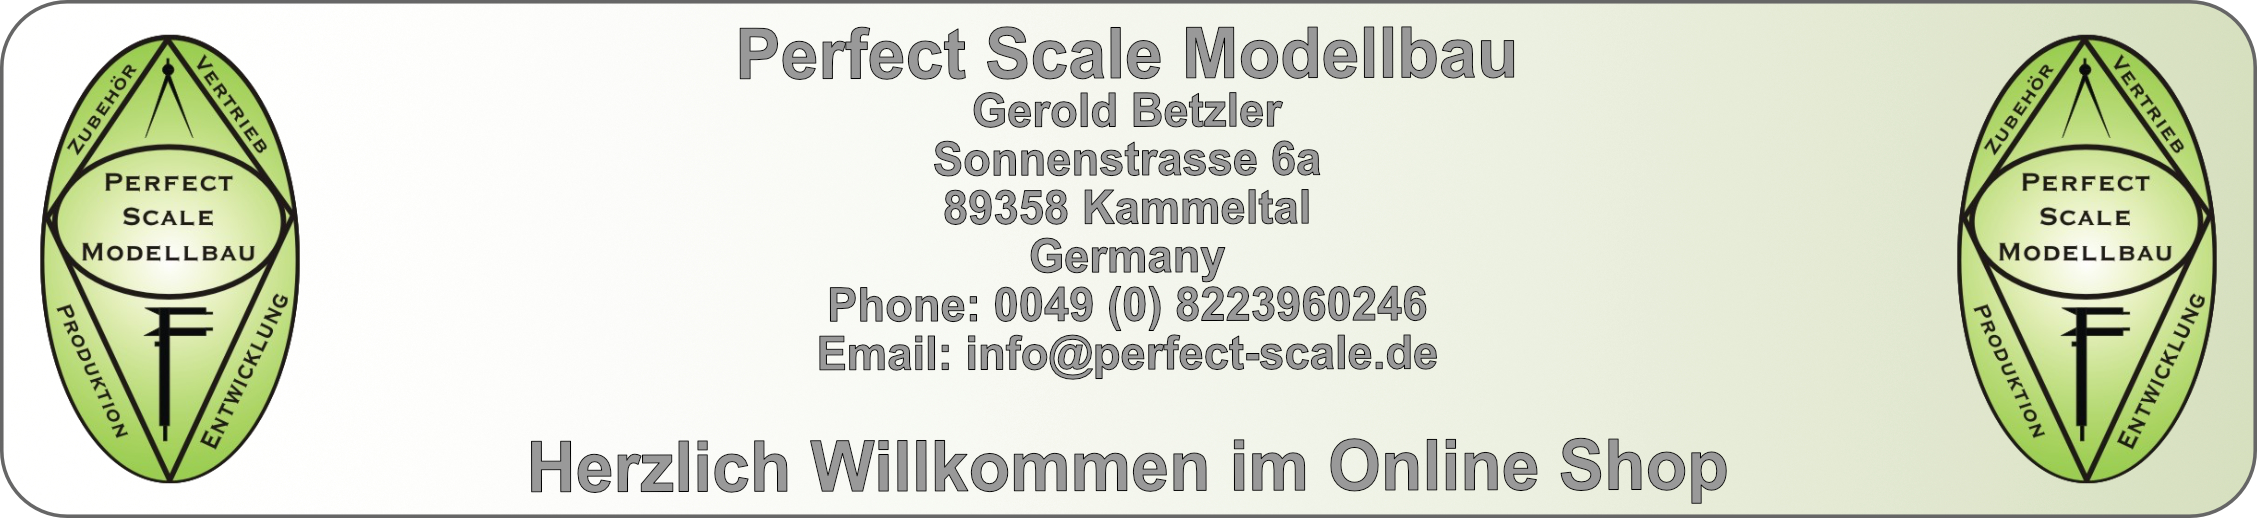 Perfect Scale Modellbau-Logo